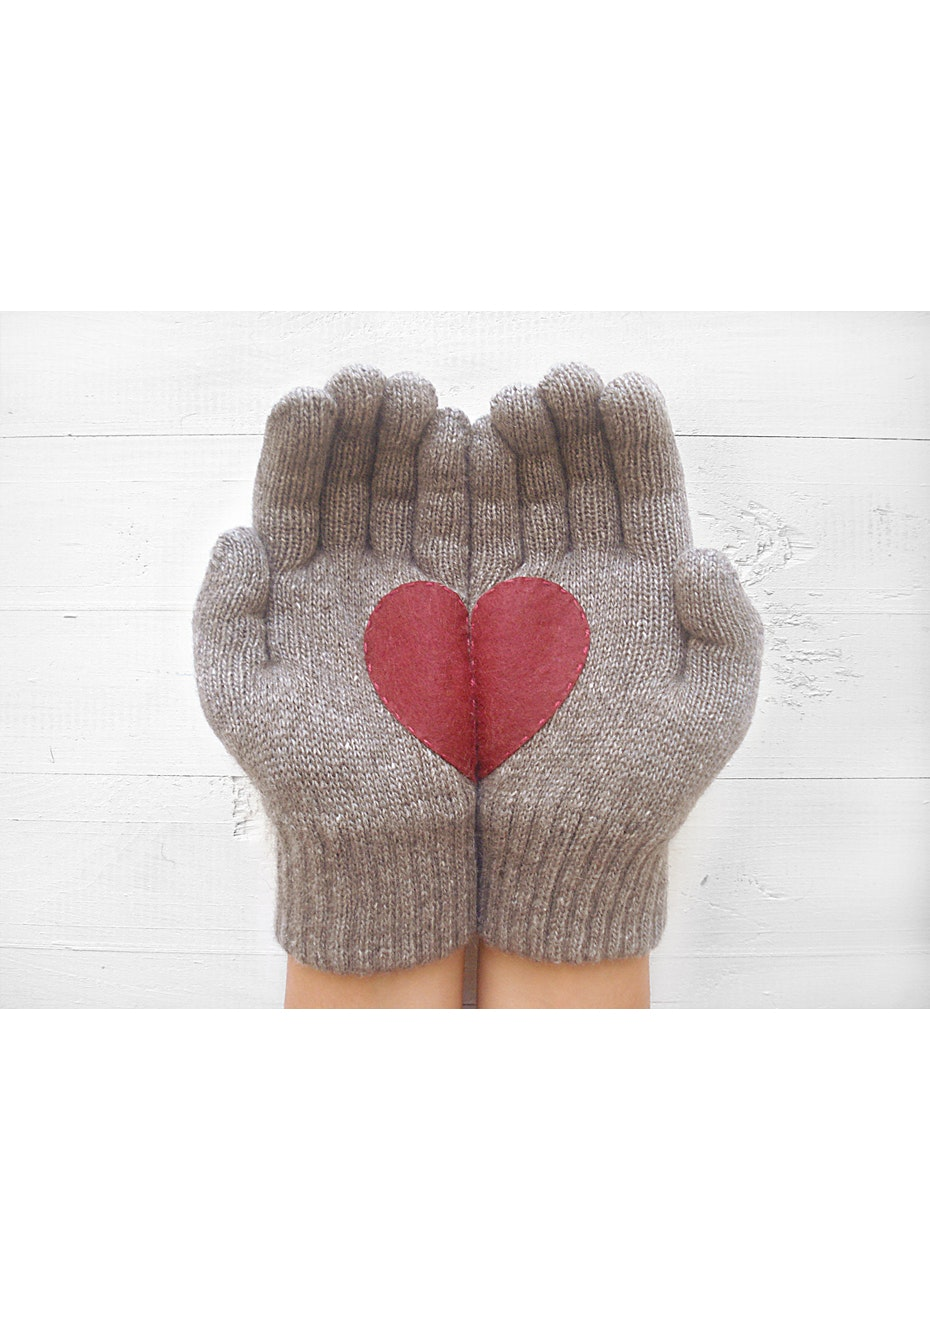 Heart Gloves - Fawn/Deep Red